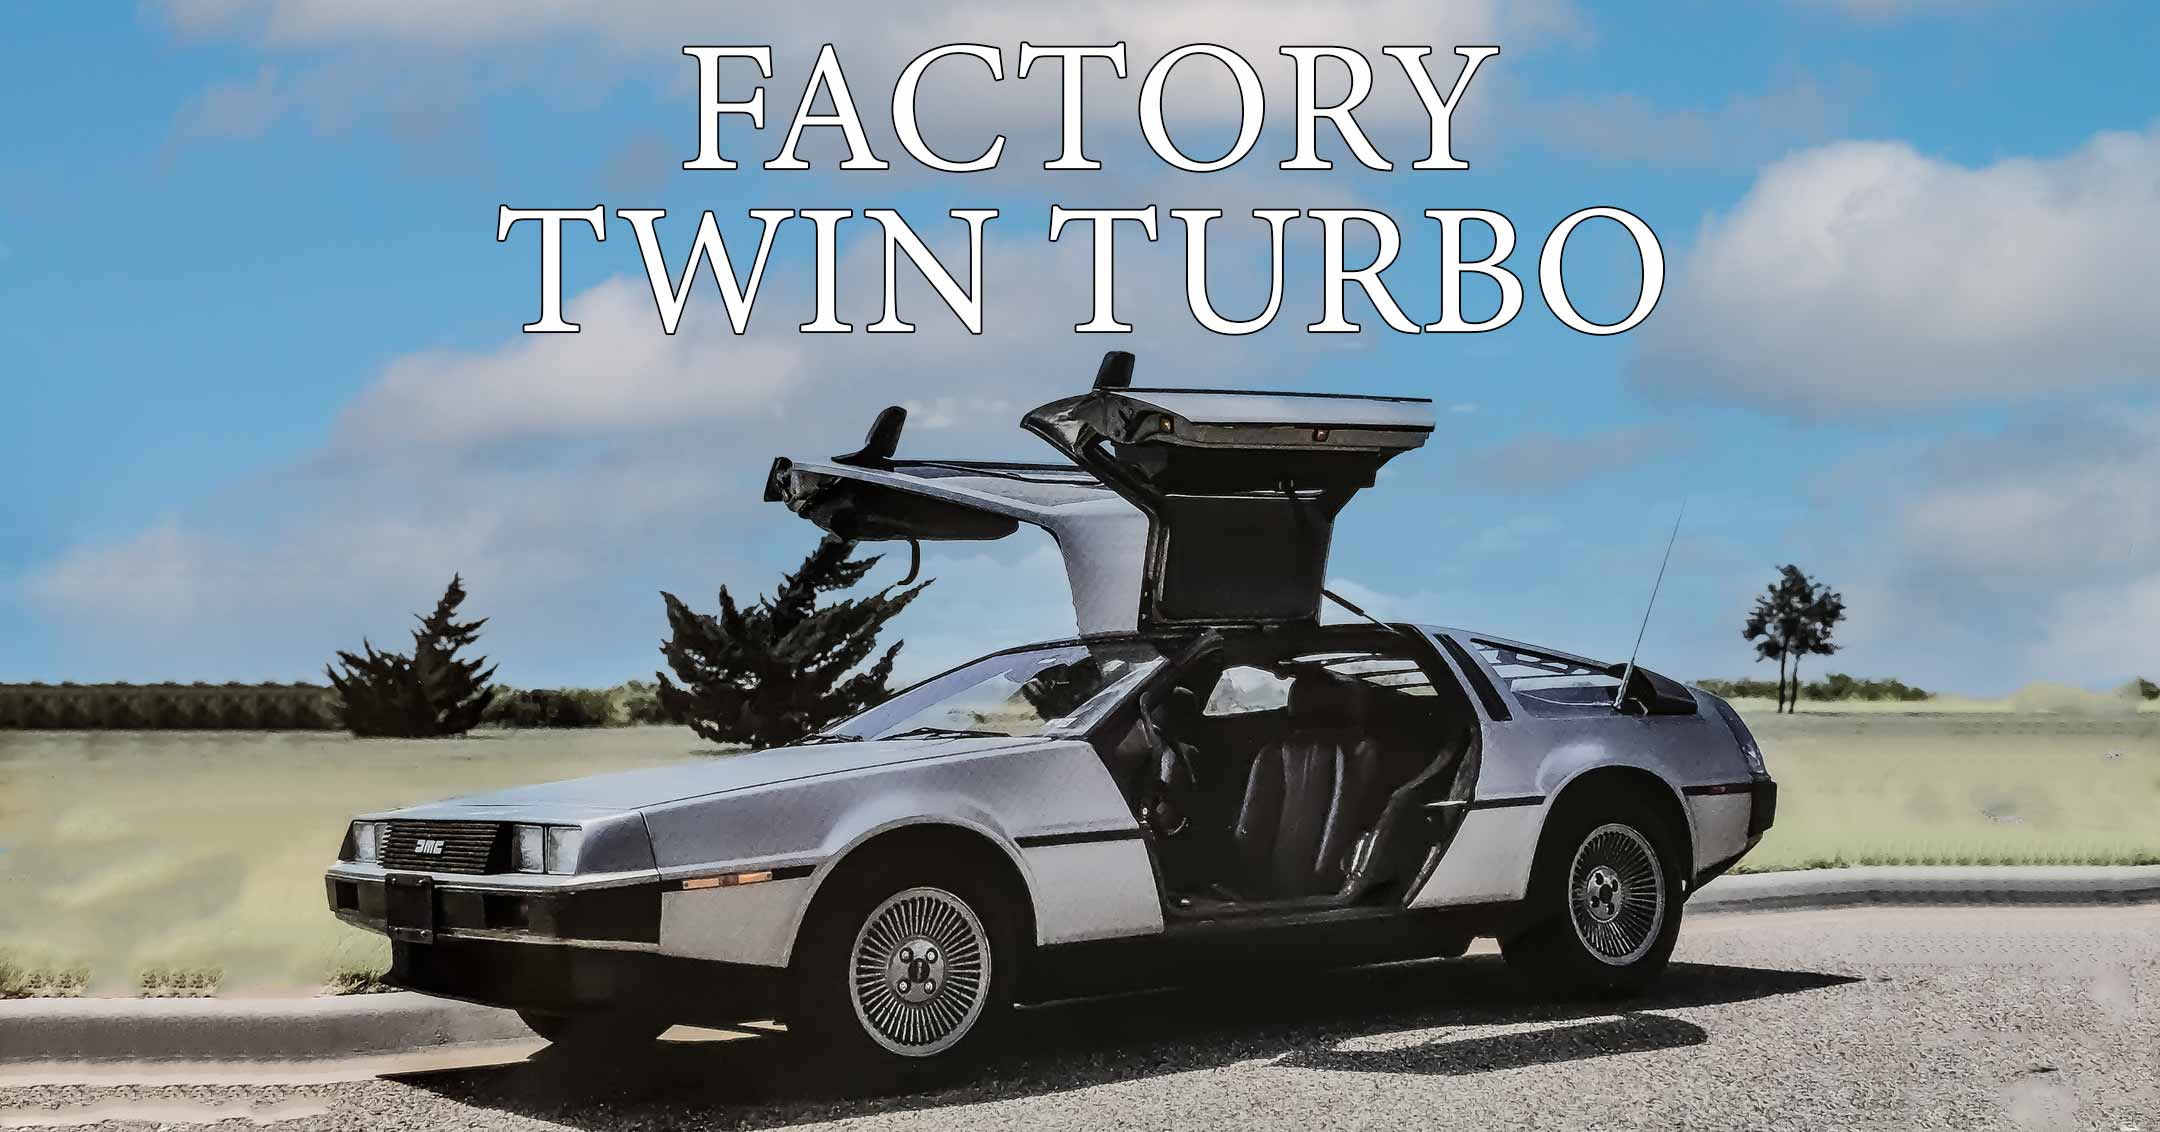 What Could Have Been #00502 - Factory Twin Turbo | DeLoreanDirectory.com